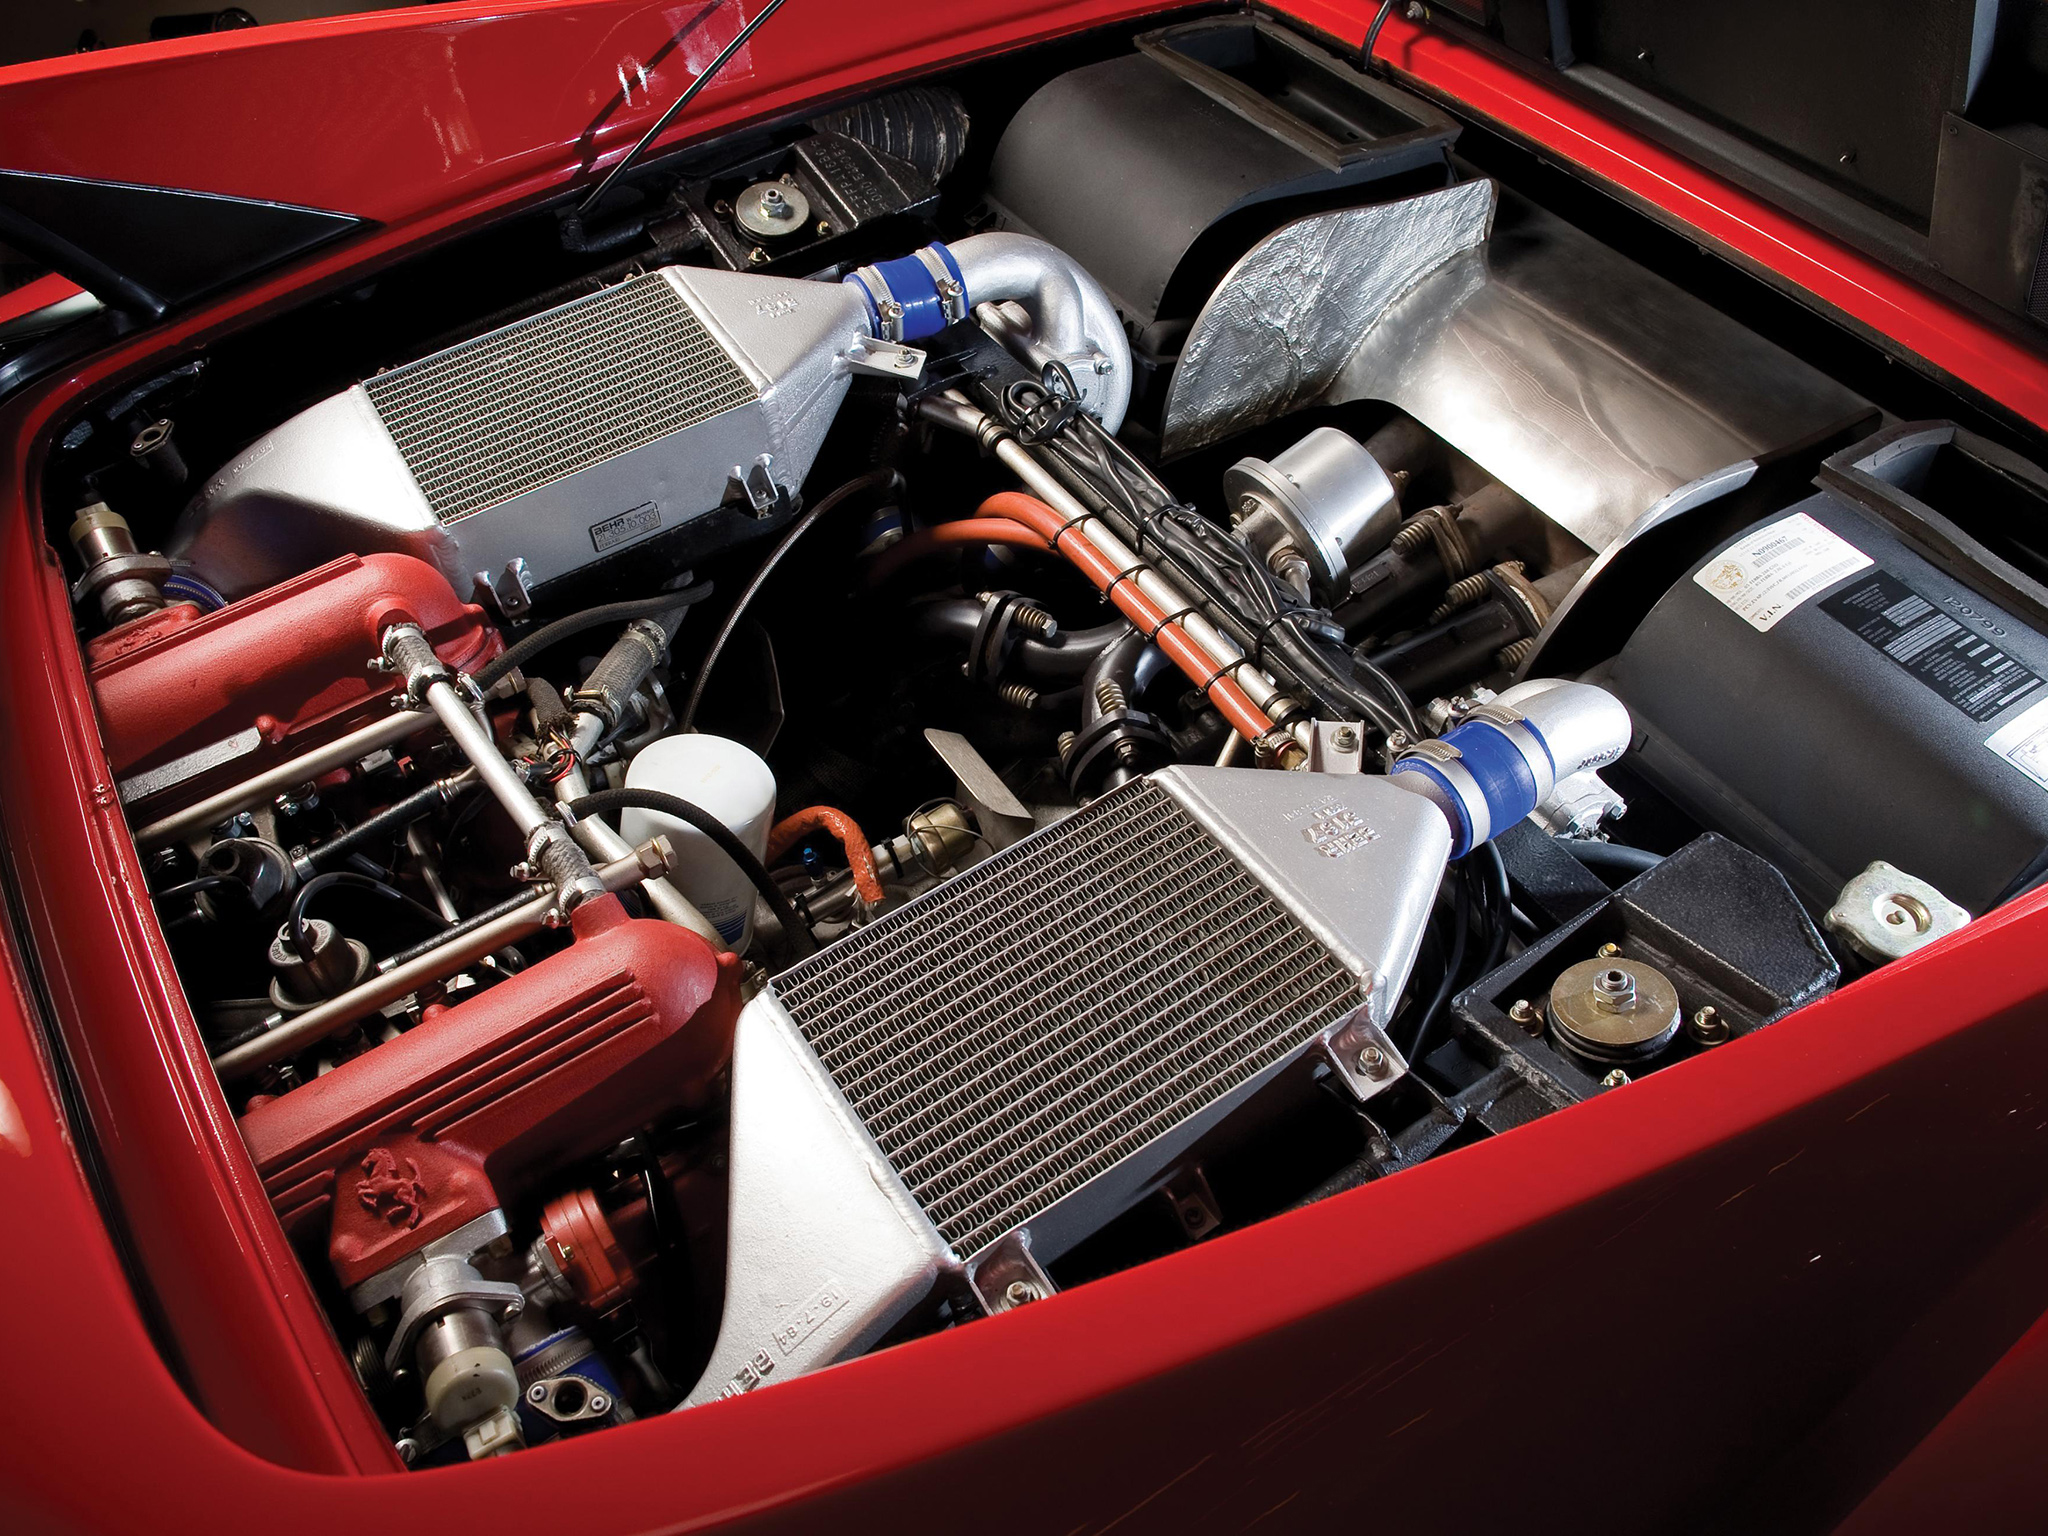 Ferrari 288 GTO Evoluzione - V8 - under the hood